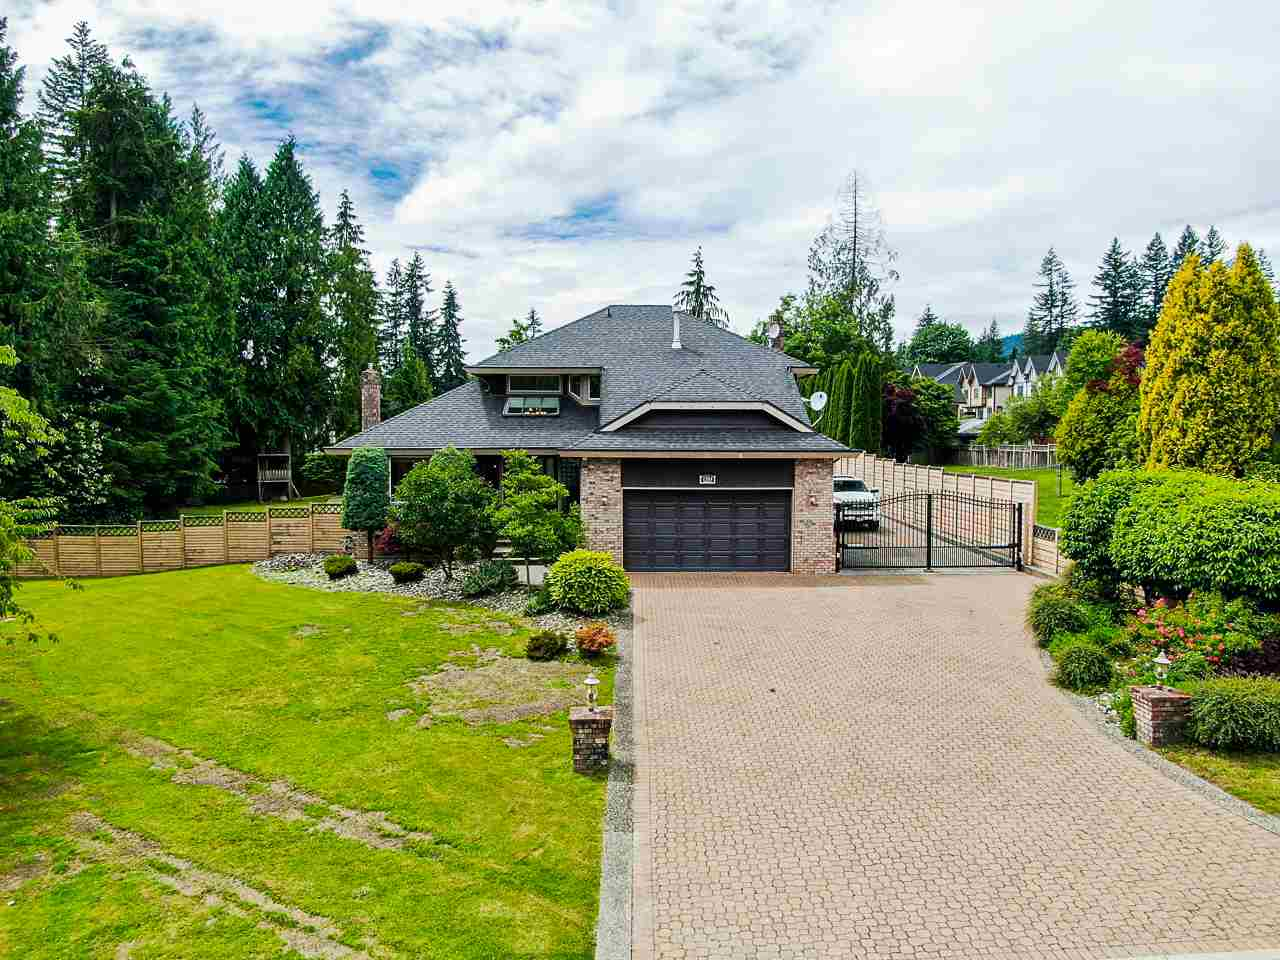 Welcome to this luxurious Family Estate located in Coquitlam?s coveted Burke Mountain neighbourhood! Private, Gated, 1 Acre Lot with plenty of future development potential. This exceptional floor plan features 4 bedrooms, 4 bathrooms and a fully finished basement that includes a spacious Games Room, Rec. Room and Theater. Enjoy entertaining in your very own resort-like, sun soaked backyard which boasts an amazing pool with waterfall, games + wet-bar area, covered hot tub, bbq and built-in fireplace! 2 car garage and large driveway create ample parking with plenty of room for an RV, while security cameras surrounding the perimeter give you peace of mind. Meticulously cared for, air conditioning throughout and centrally located near schools, shopping & more. This home truly has it all!